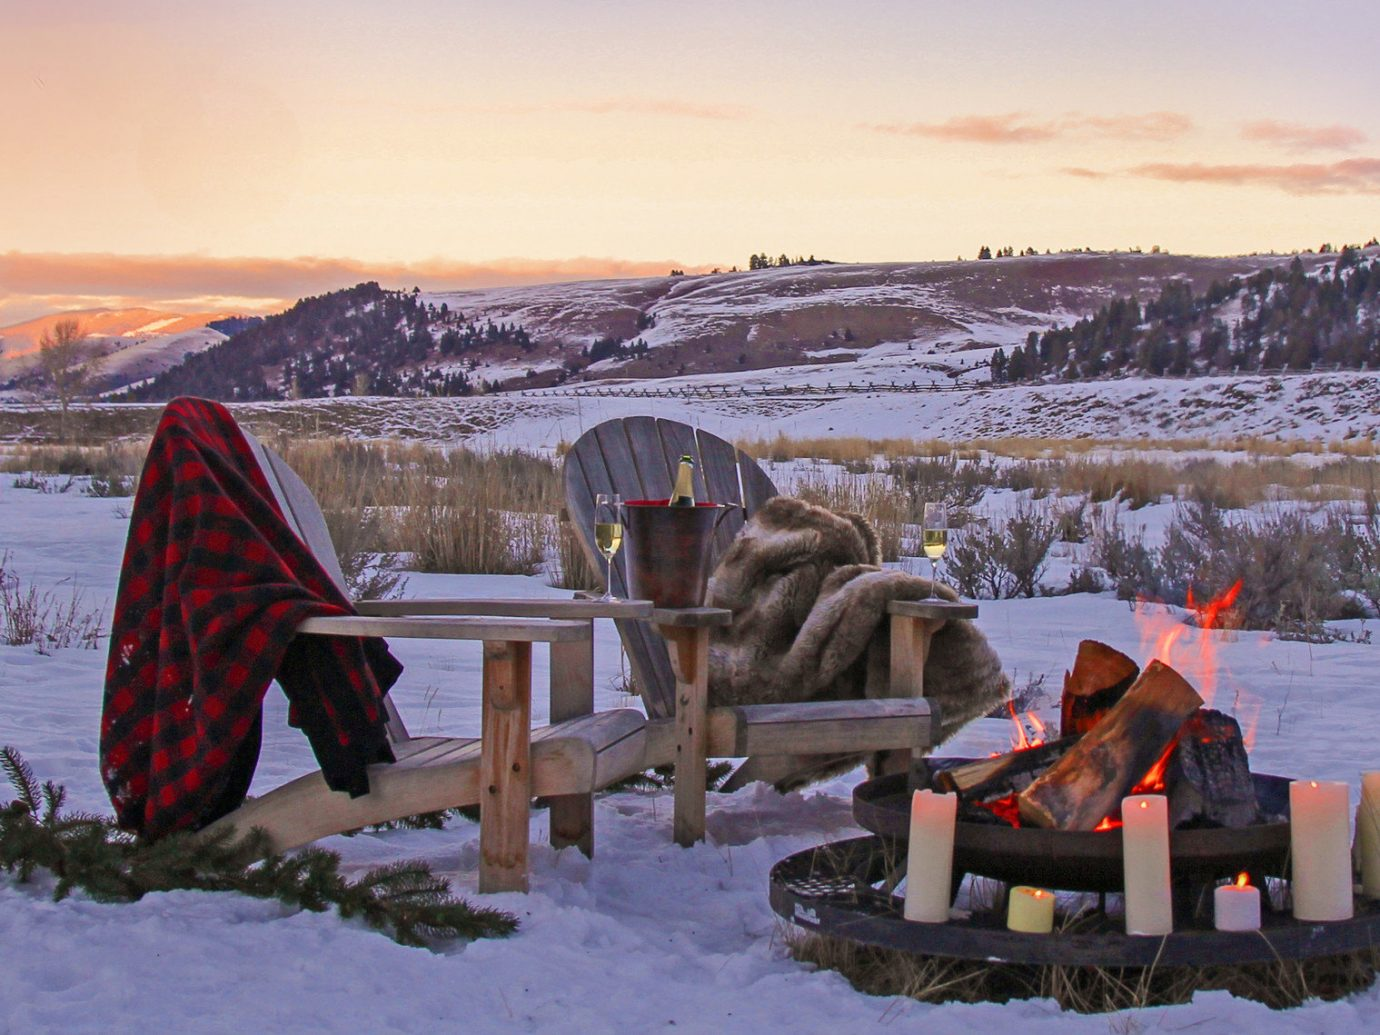 adirondack chairs blankets dusk fire Firepit flame Health + Wellness Hotels Spa Retreats sunrise Sunset Trip Ideas wilderness sky outdoor snow Winter weather season mountain